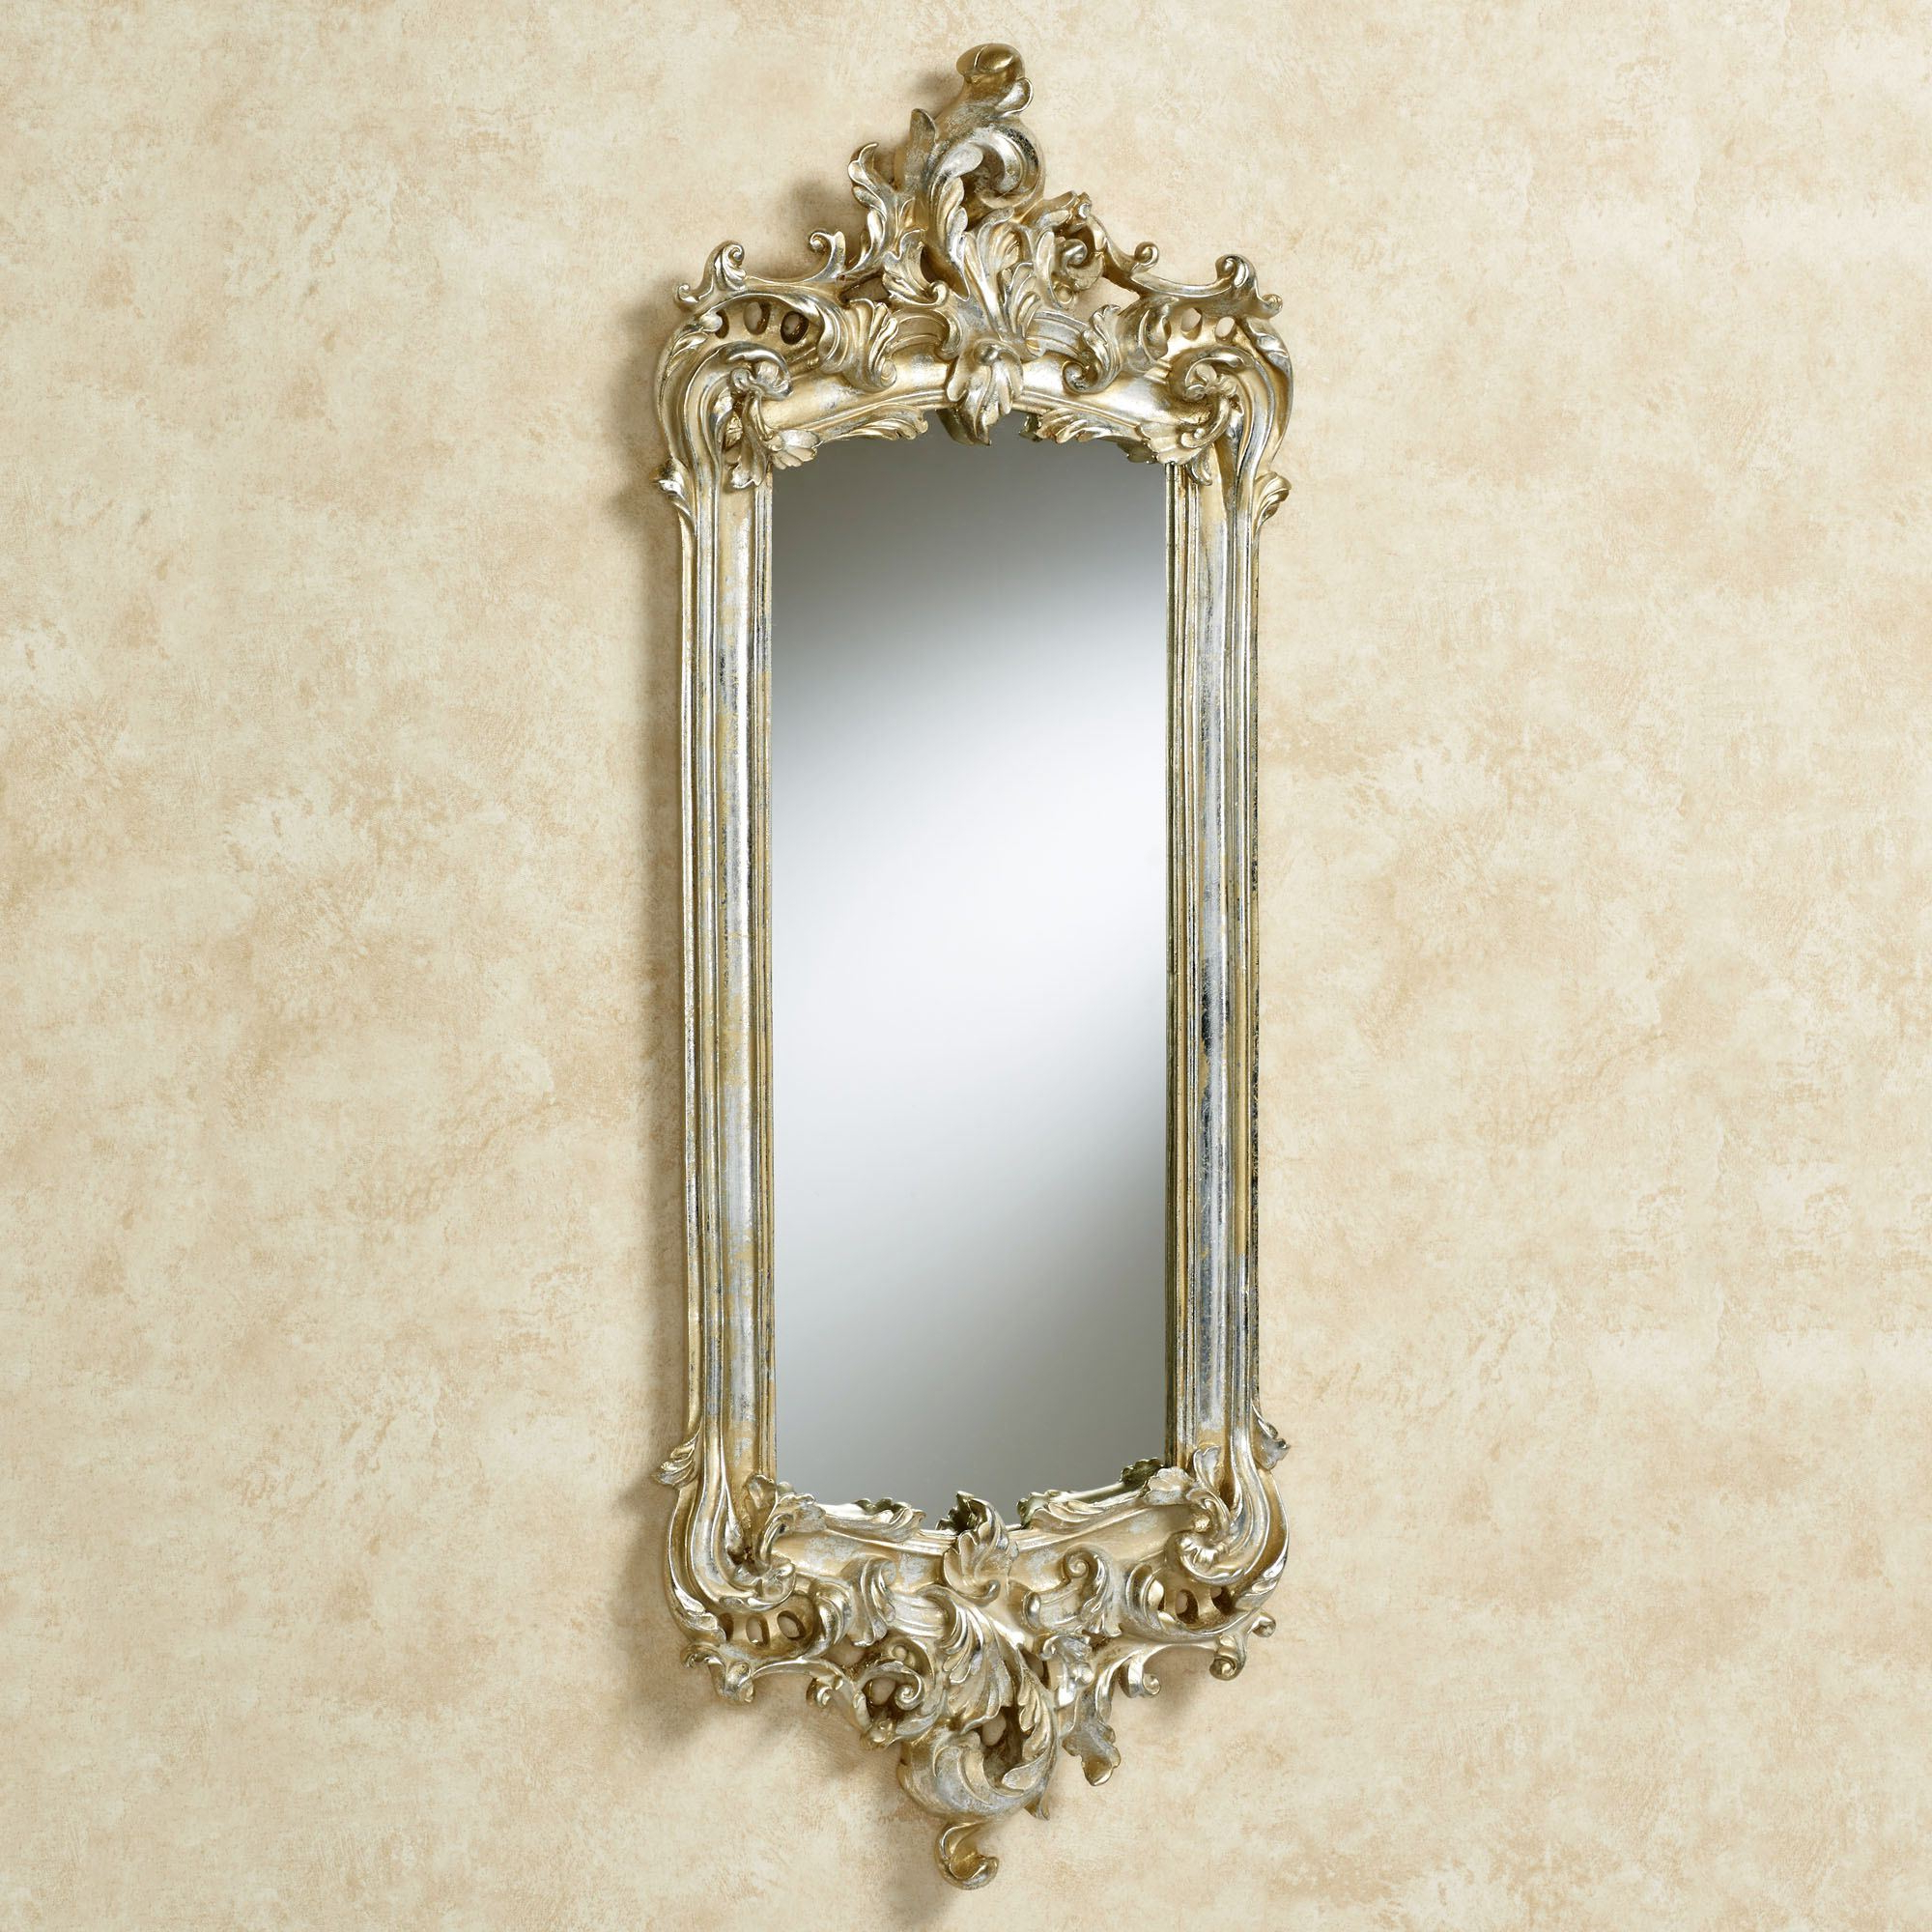 Lela Silver Gold Acanthus Wall Mirror Pertaining To Newest Gold Wall Mirrors (View 6 of 20)